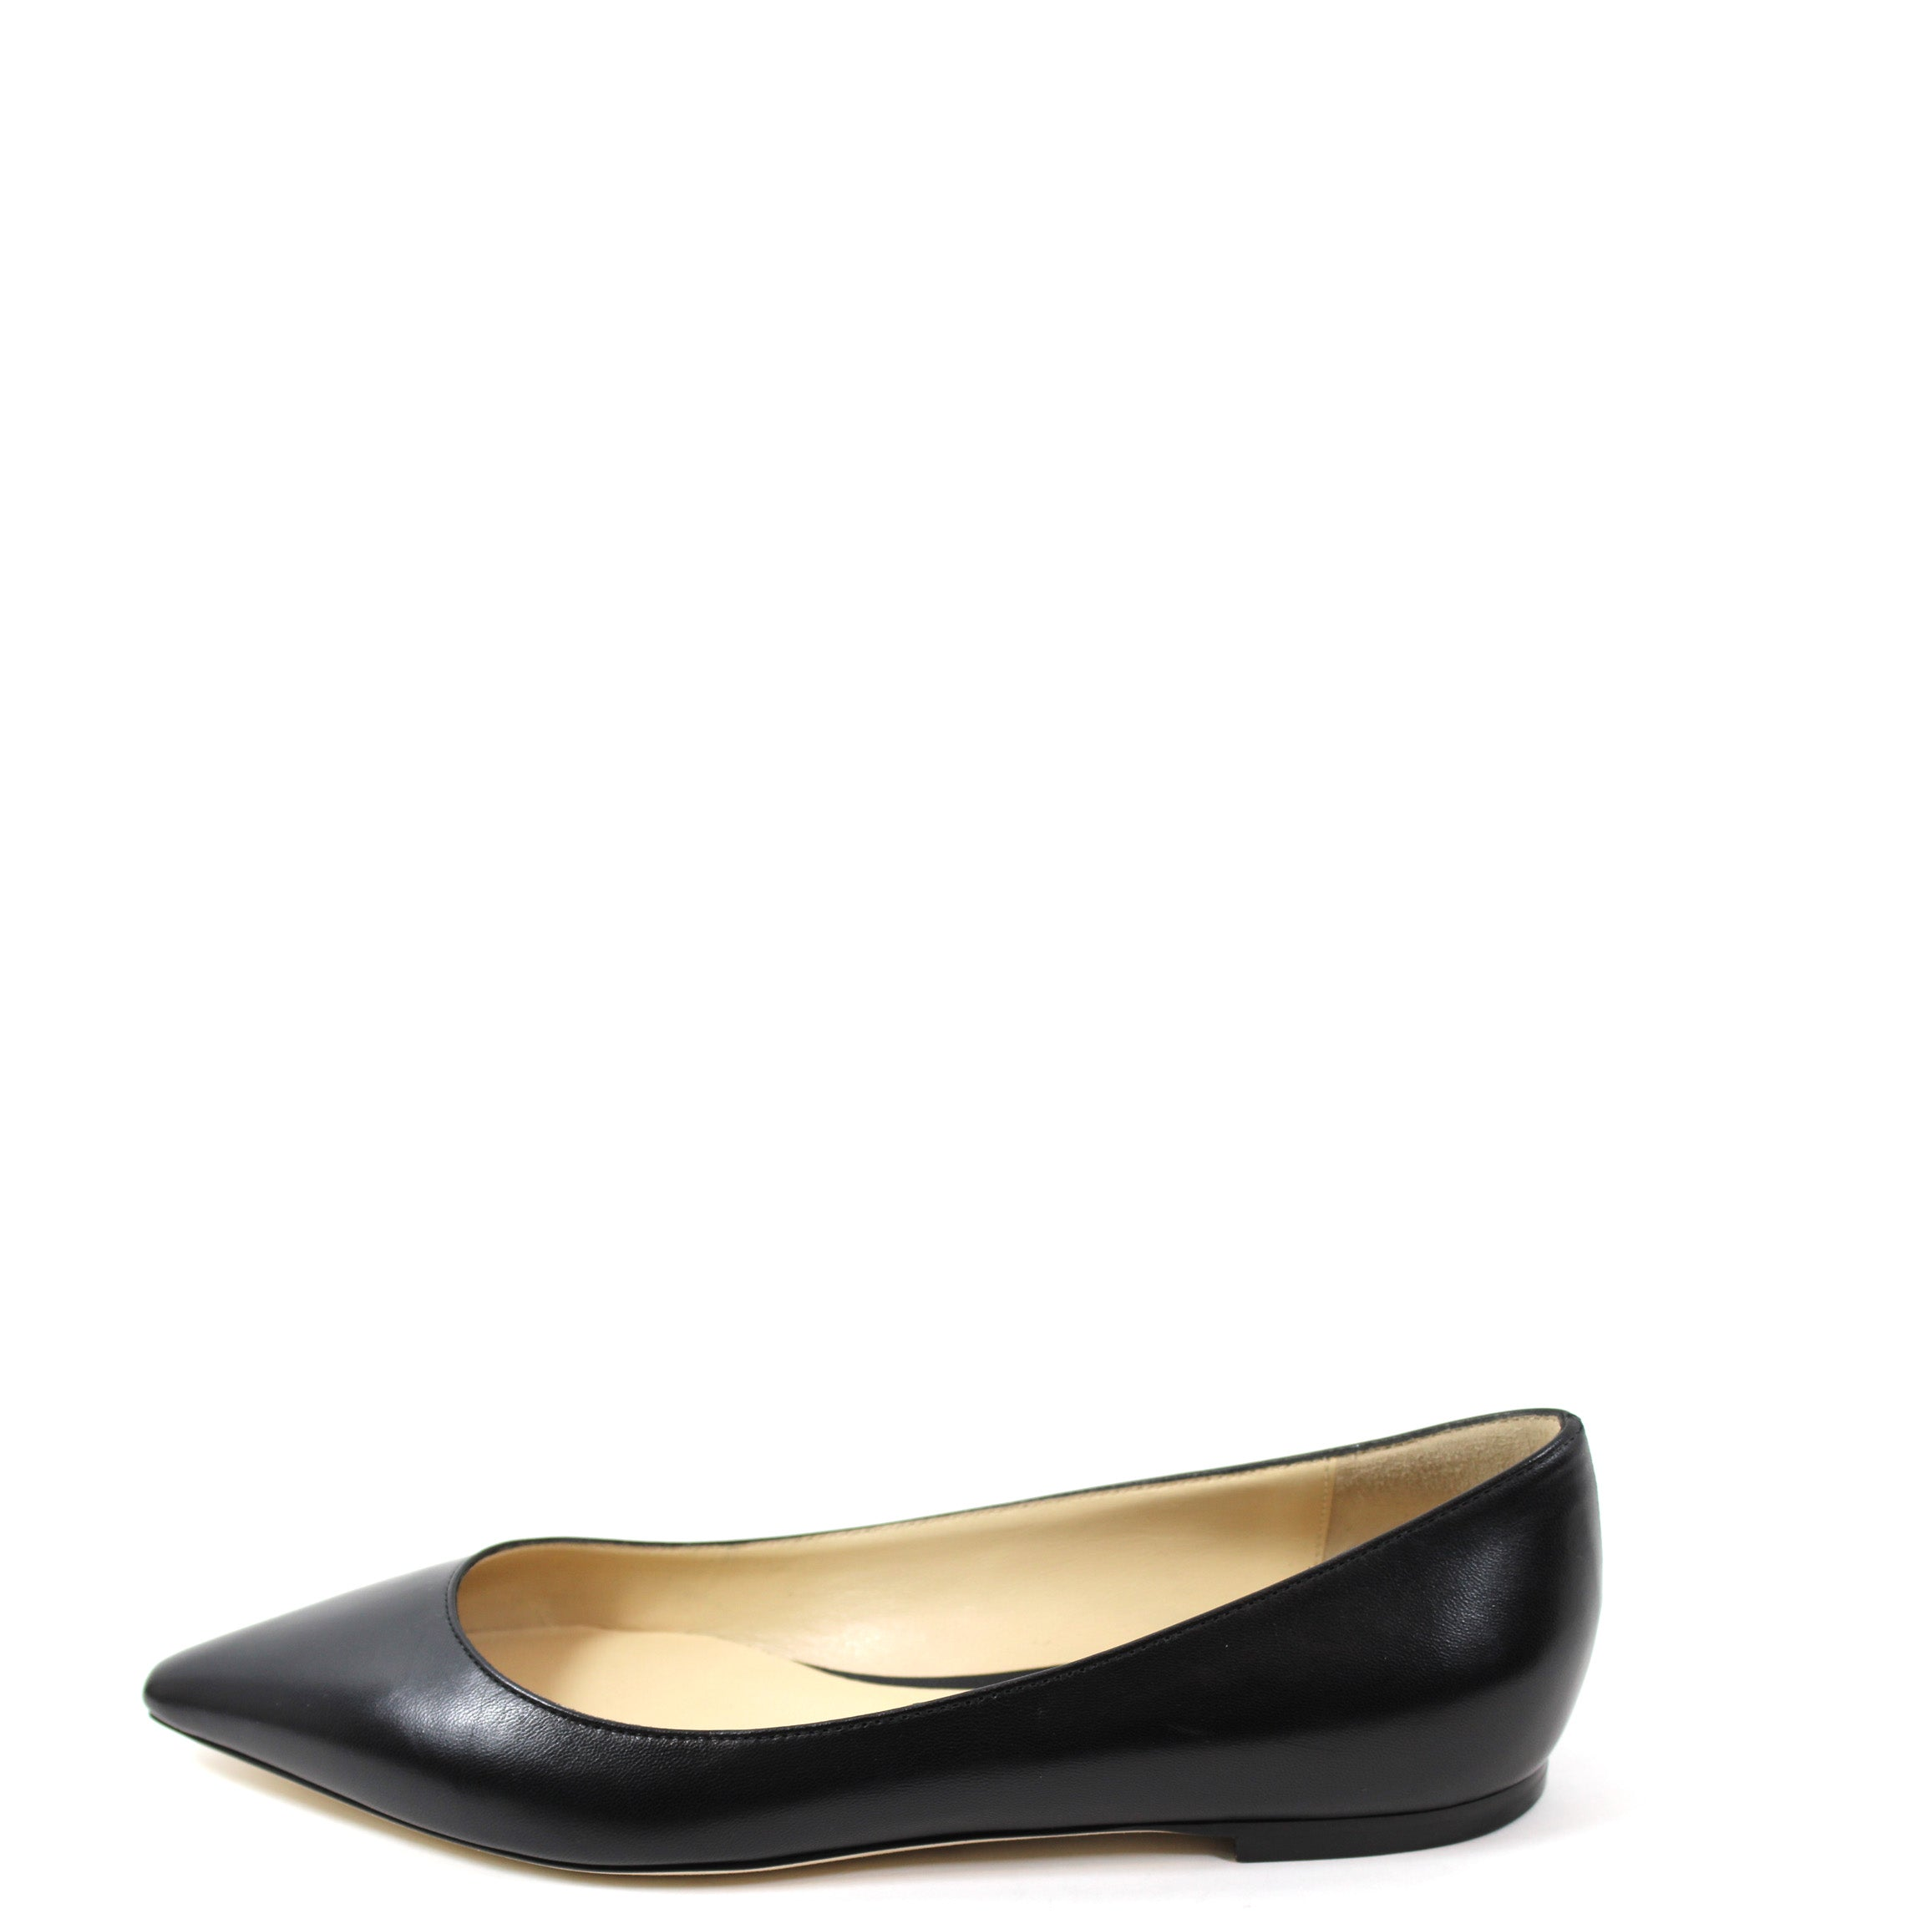 94d54eb903 Jimmy Choo 'Romy' Black Leather Flats (Size 37) – Encore Consignment